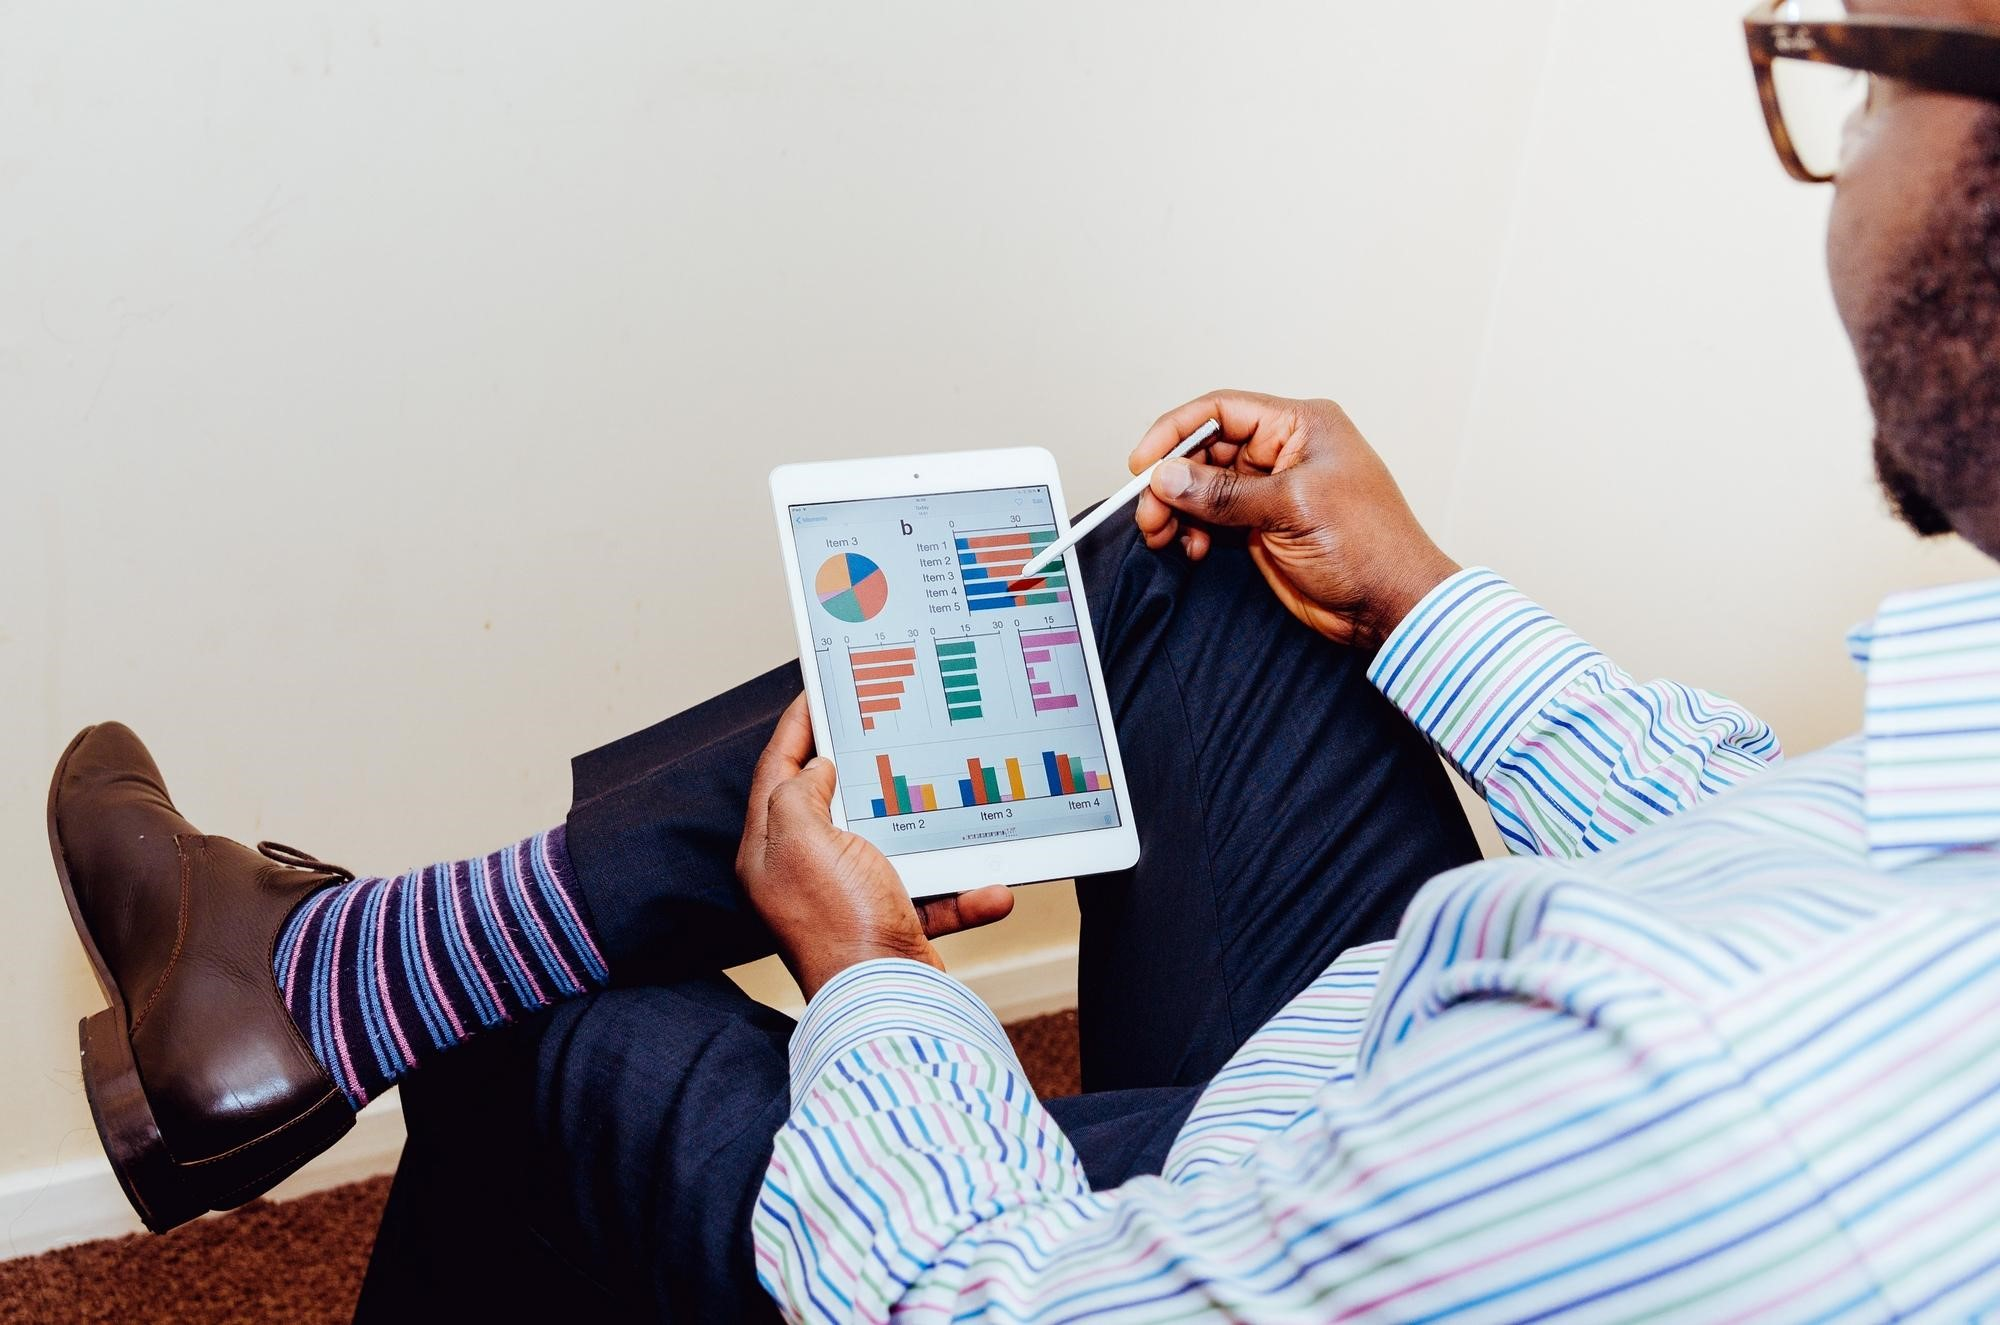 15 Essential Analytic Online Tools and Apps for Digital Marketers